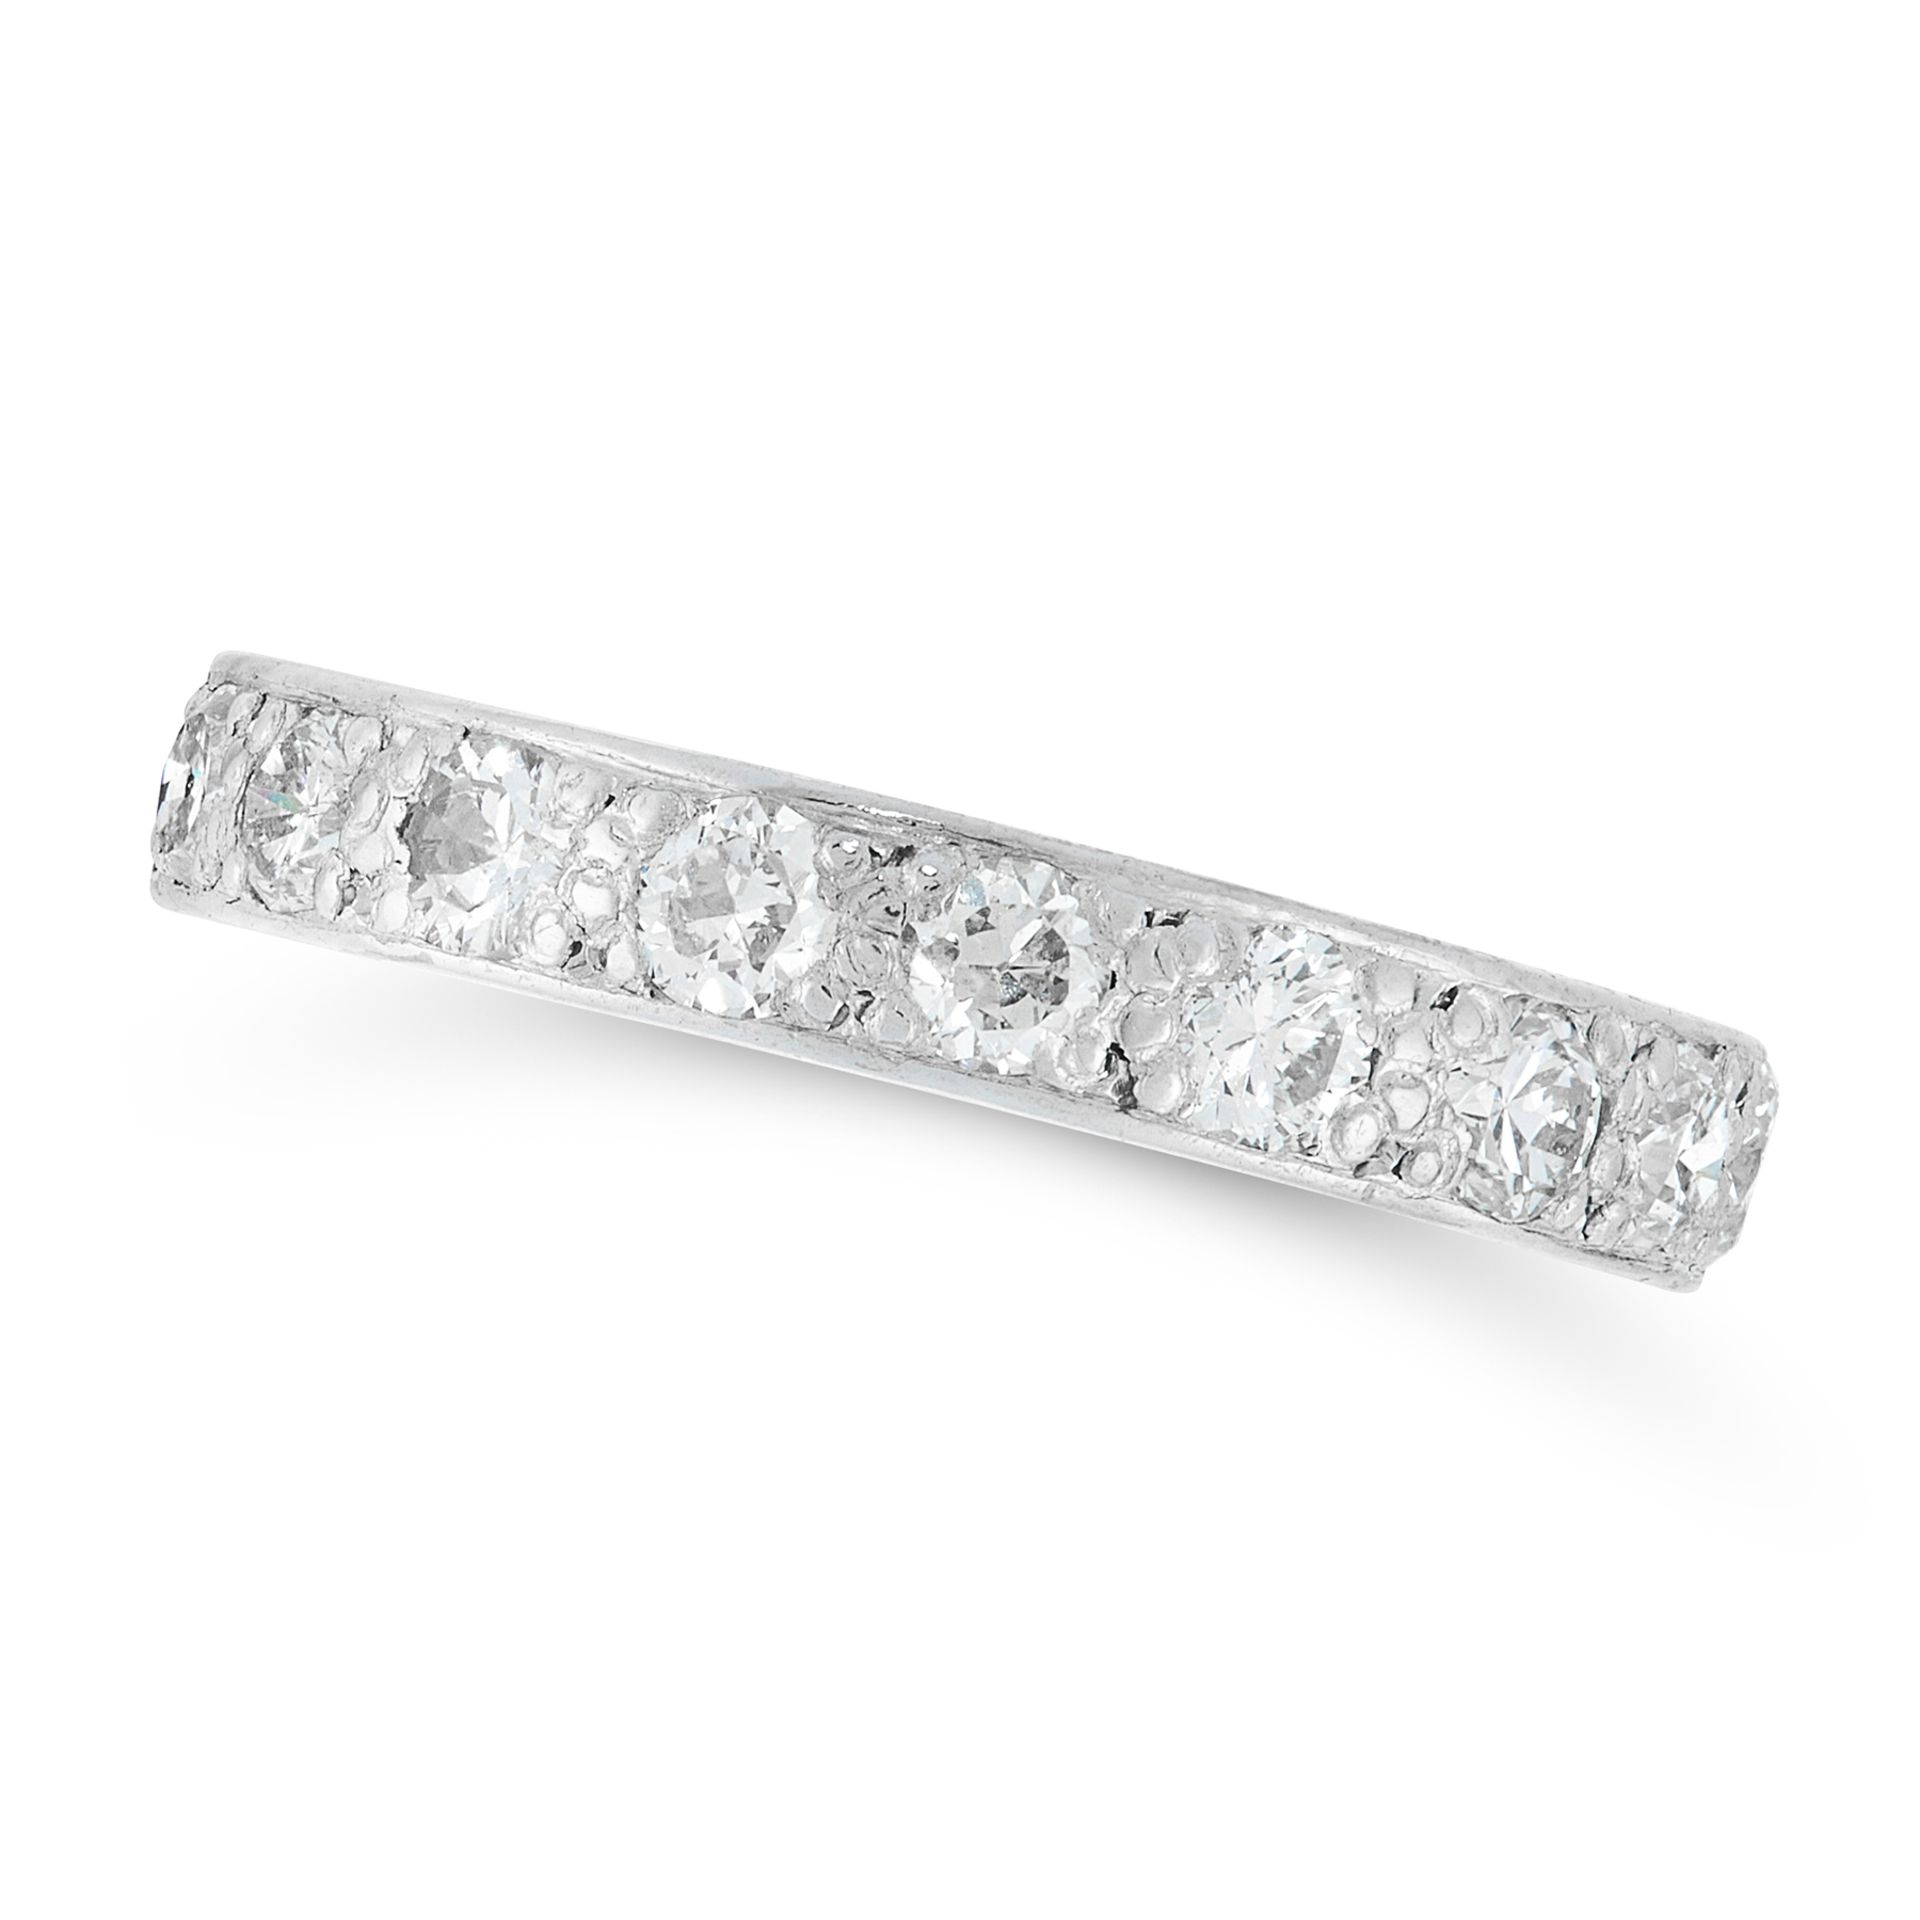 A DIAMOND ETERNITY RING in platinum, designed as a band set with a single row of round cut